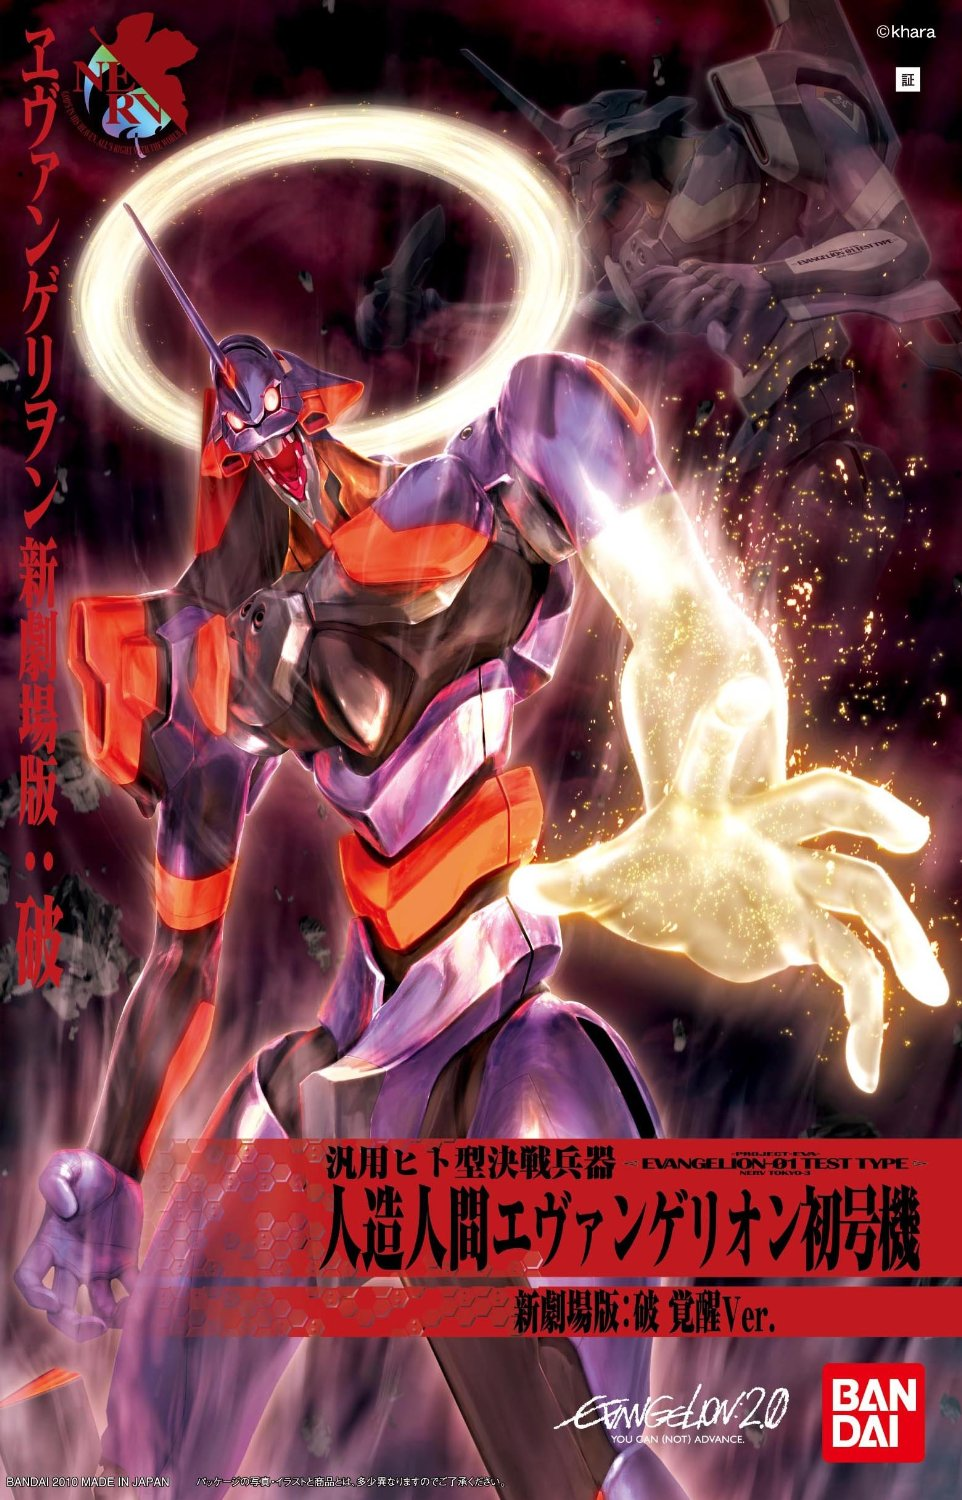 Evangelion-01 The Movie Awakening Version